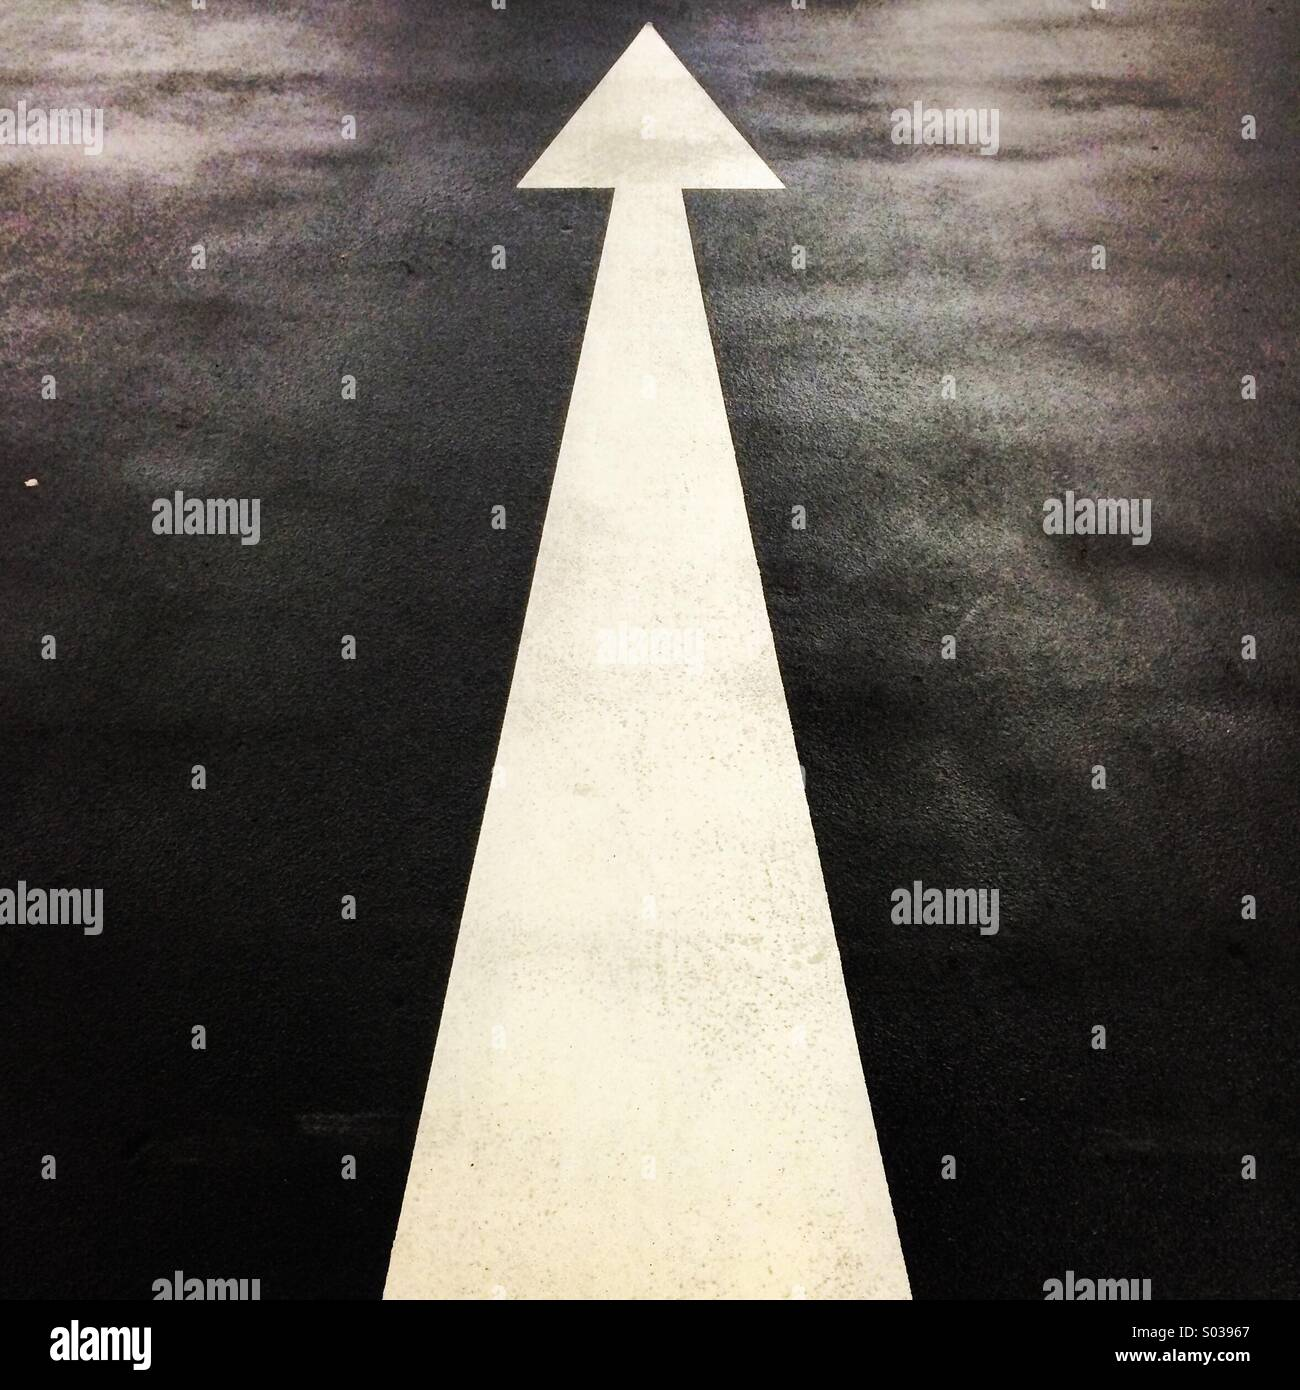 Long white arrow painted onto asphalt. - Stock Image